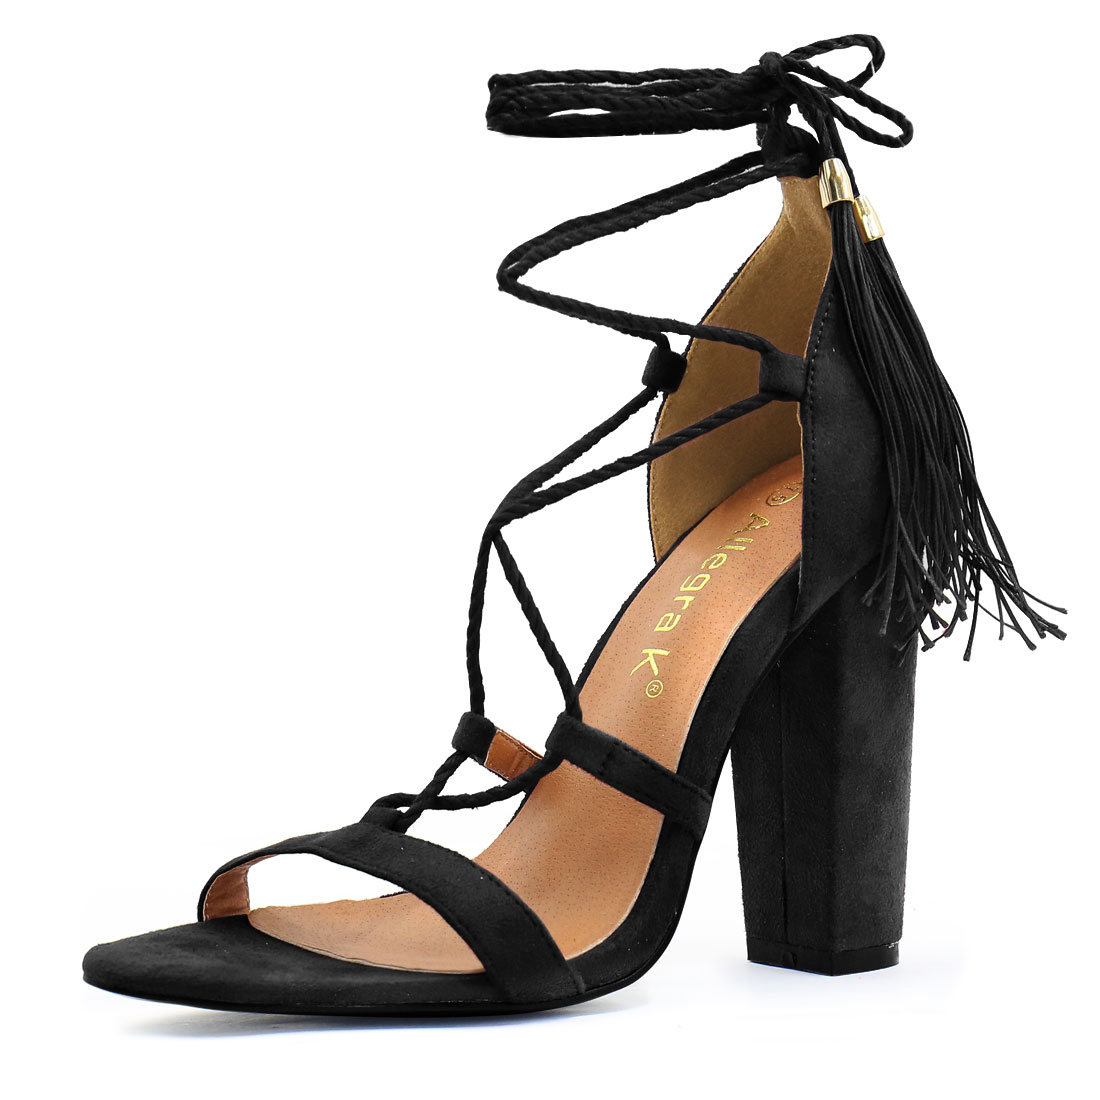 Women Chunky High Heel Tassel Closure Lace Up Sandals Black US 10.5